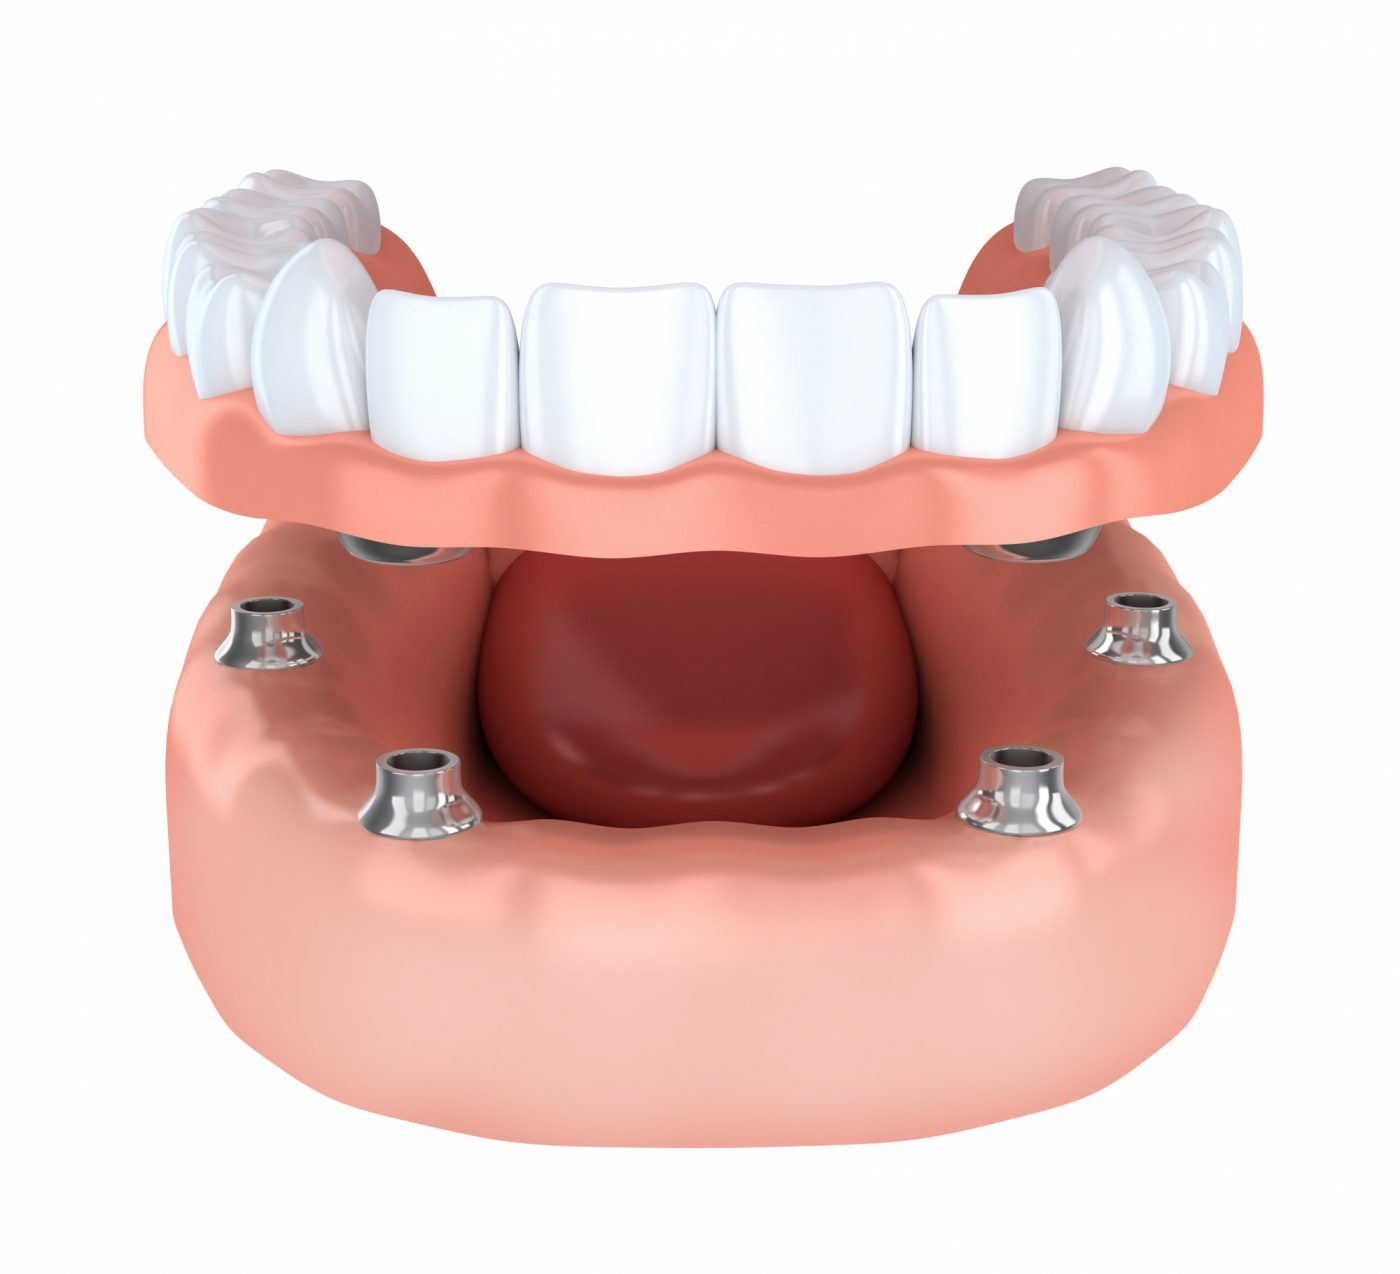 Freemanrosser Carmarthen Advicecare Denture Repair